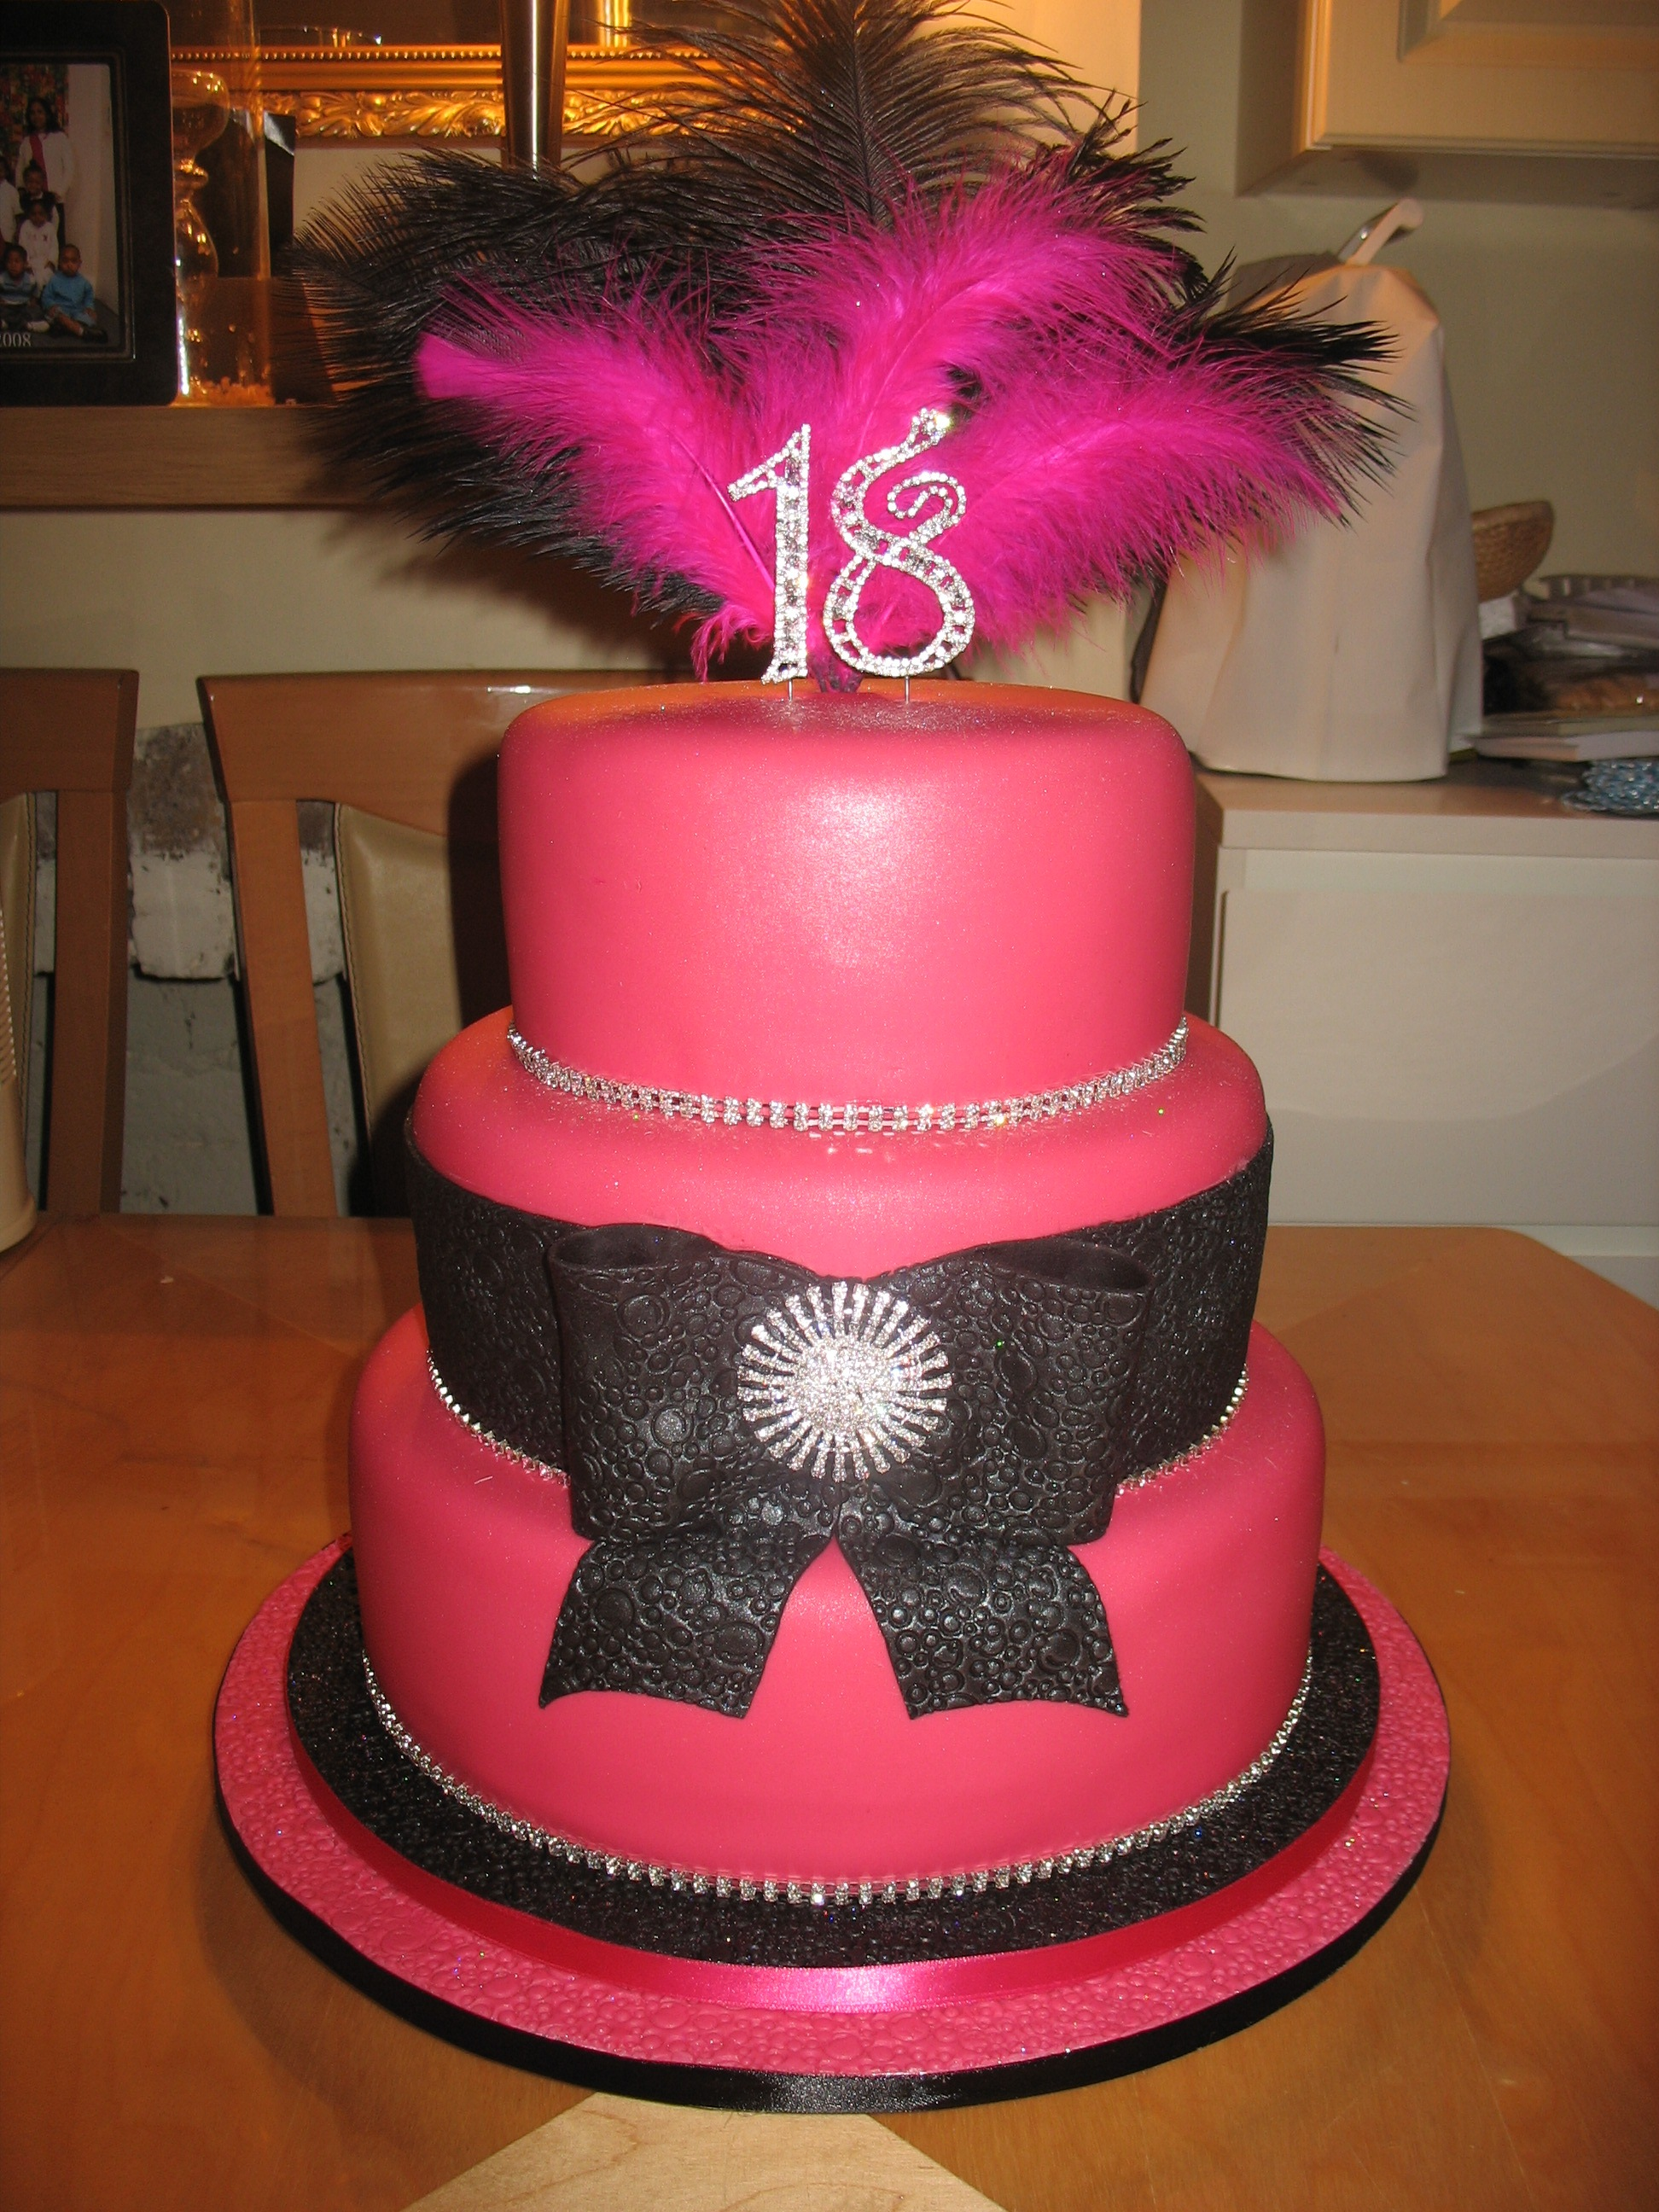 12 Black And Pink Tiered Cakes Photo Pink Black And White Tiered